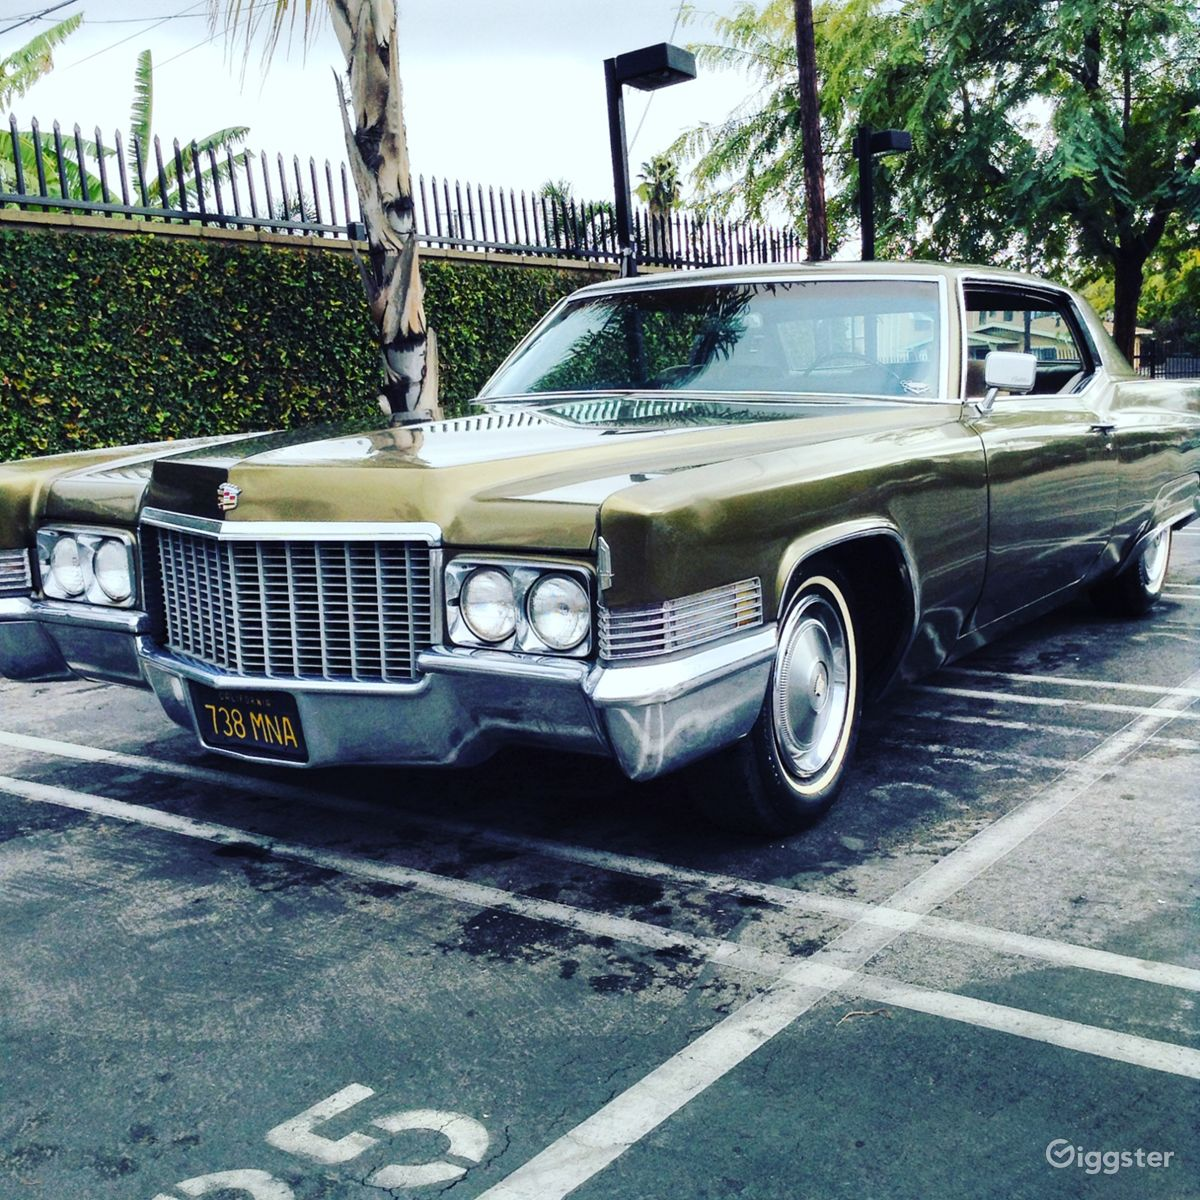 Rent 1970 Cadillac Coupe DeVille Car (transportation) for film ...